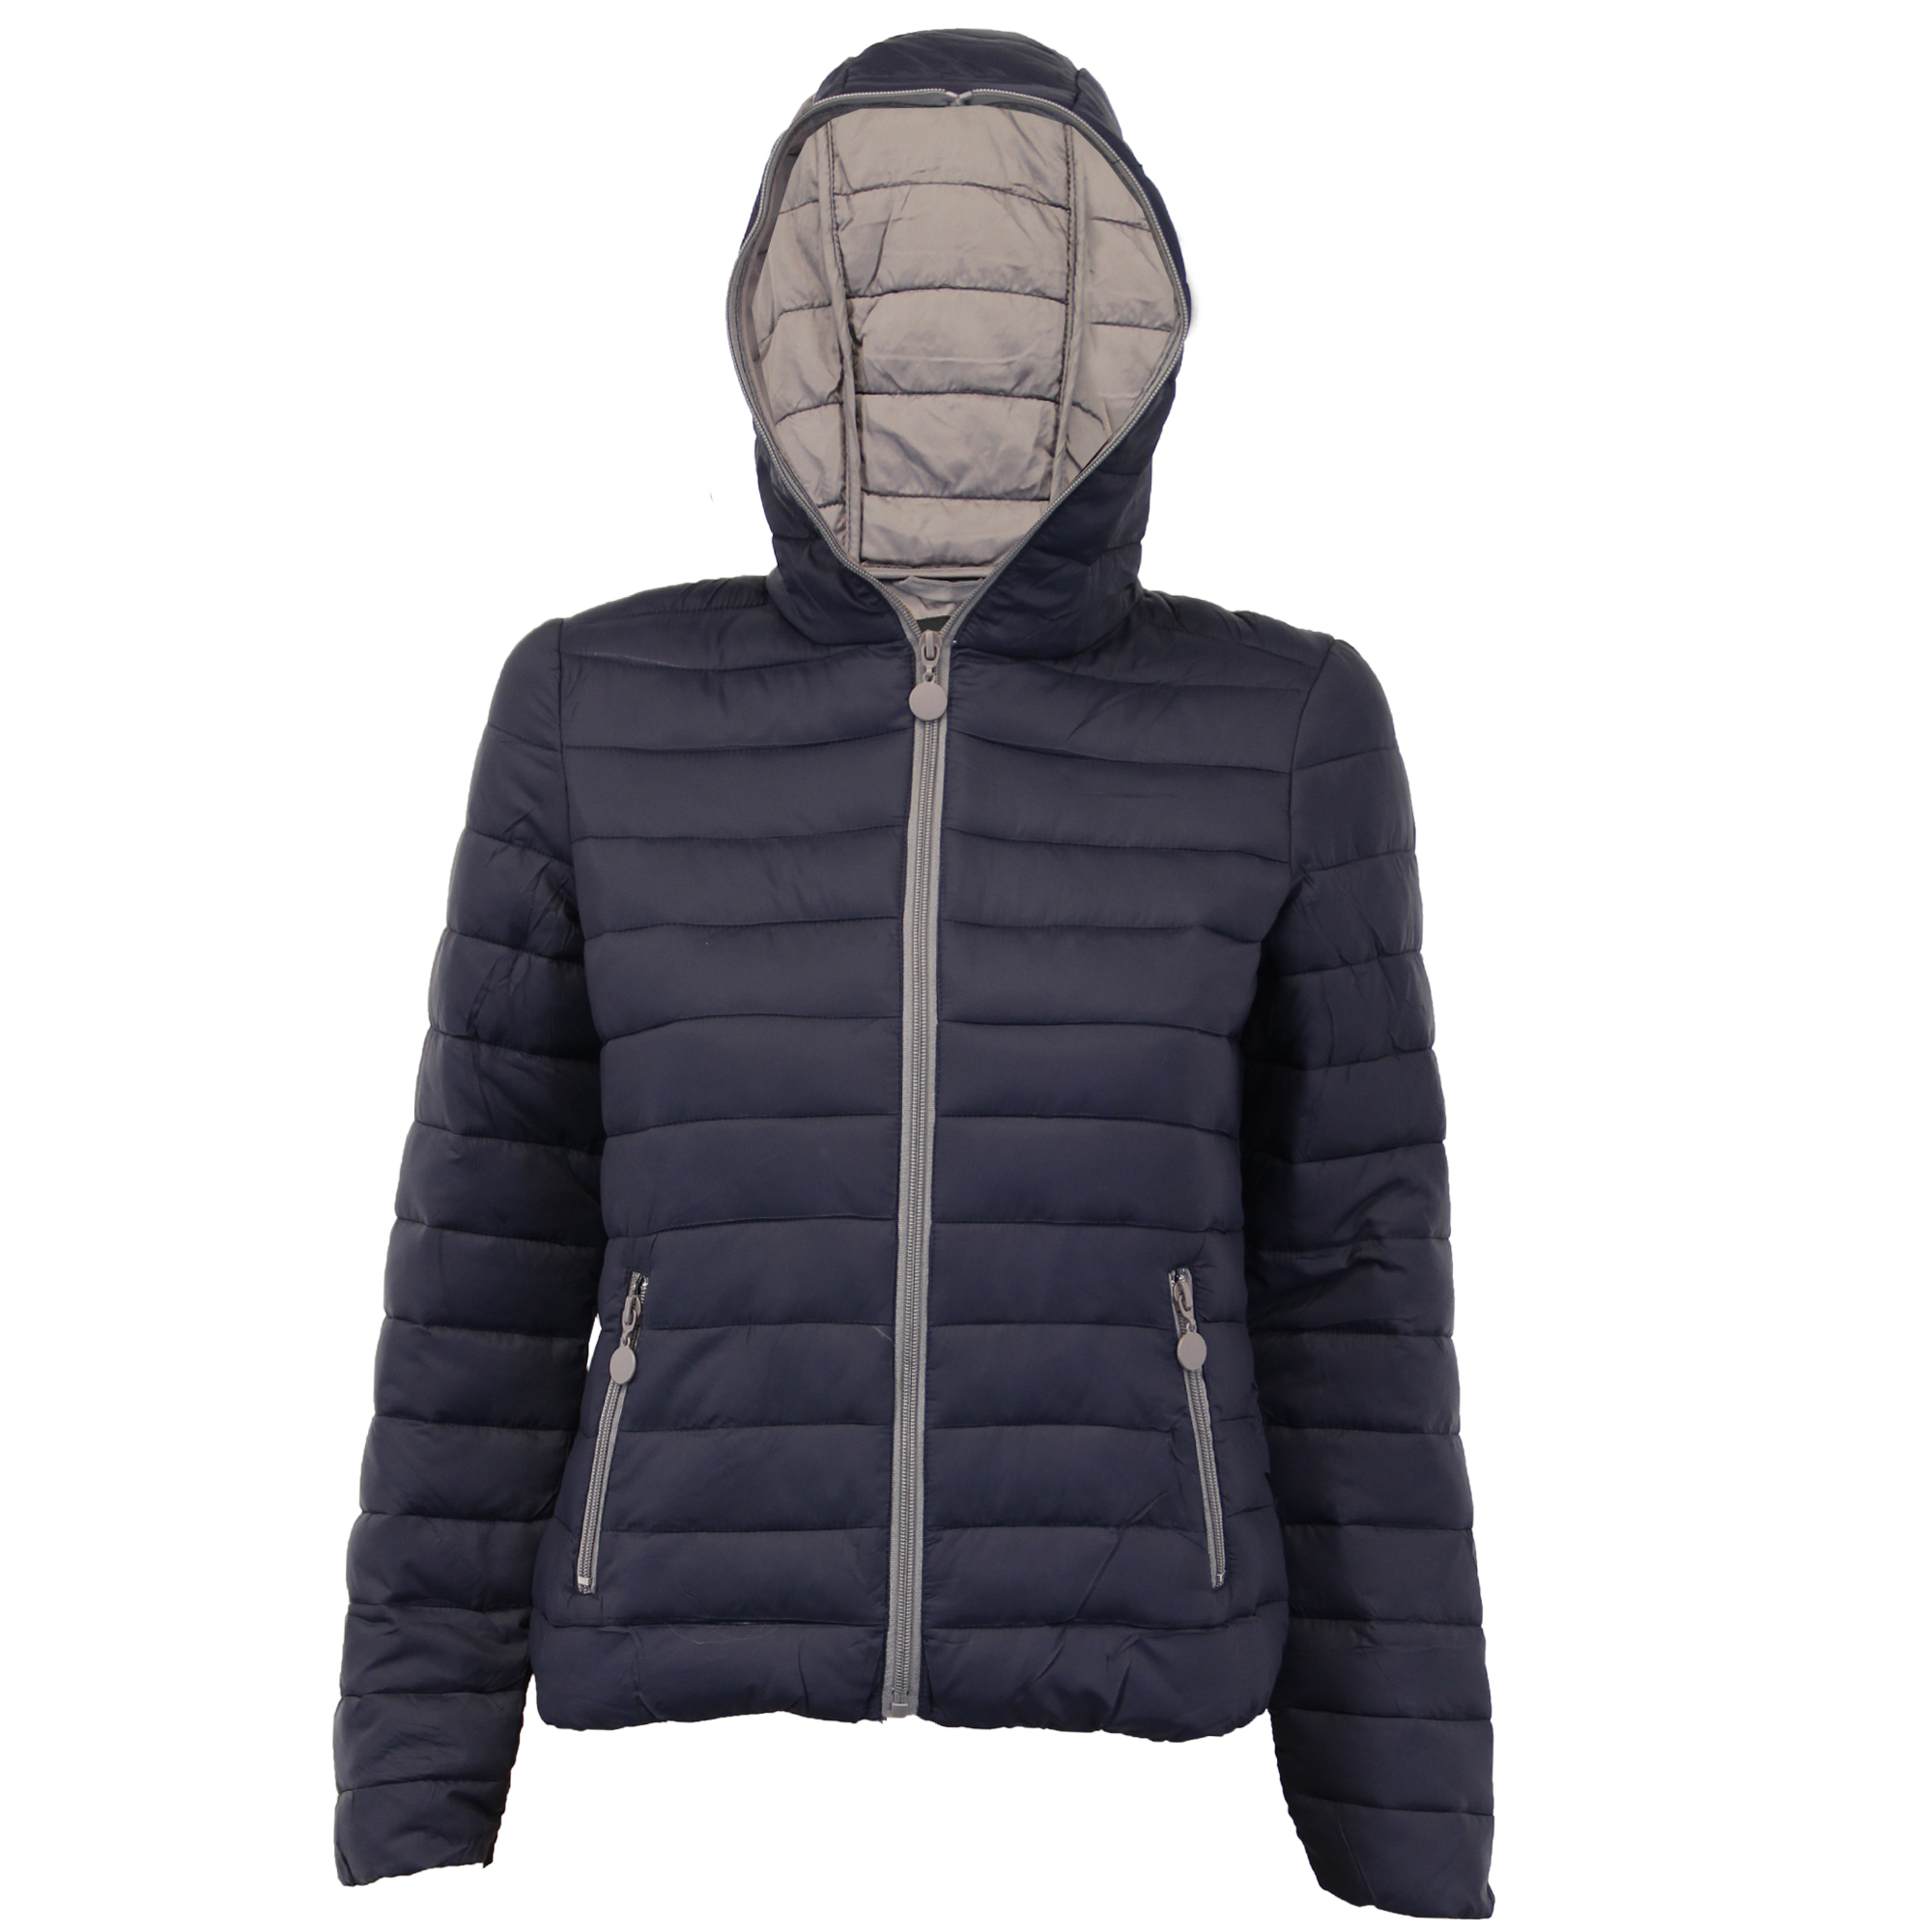 Ladies Parka Jacket Brave Soul Womens Coat Fish Tail Padded Hooded ... : quilted hooded jacket - Adamdwight.com